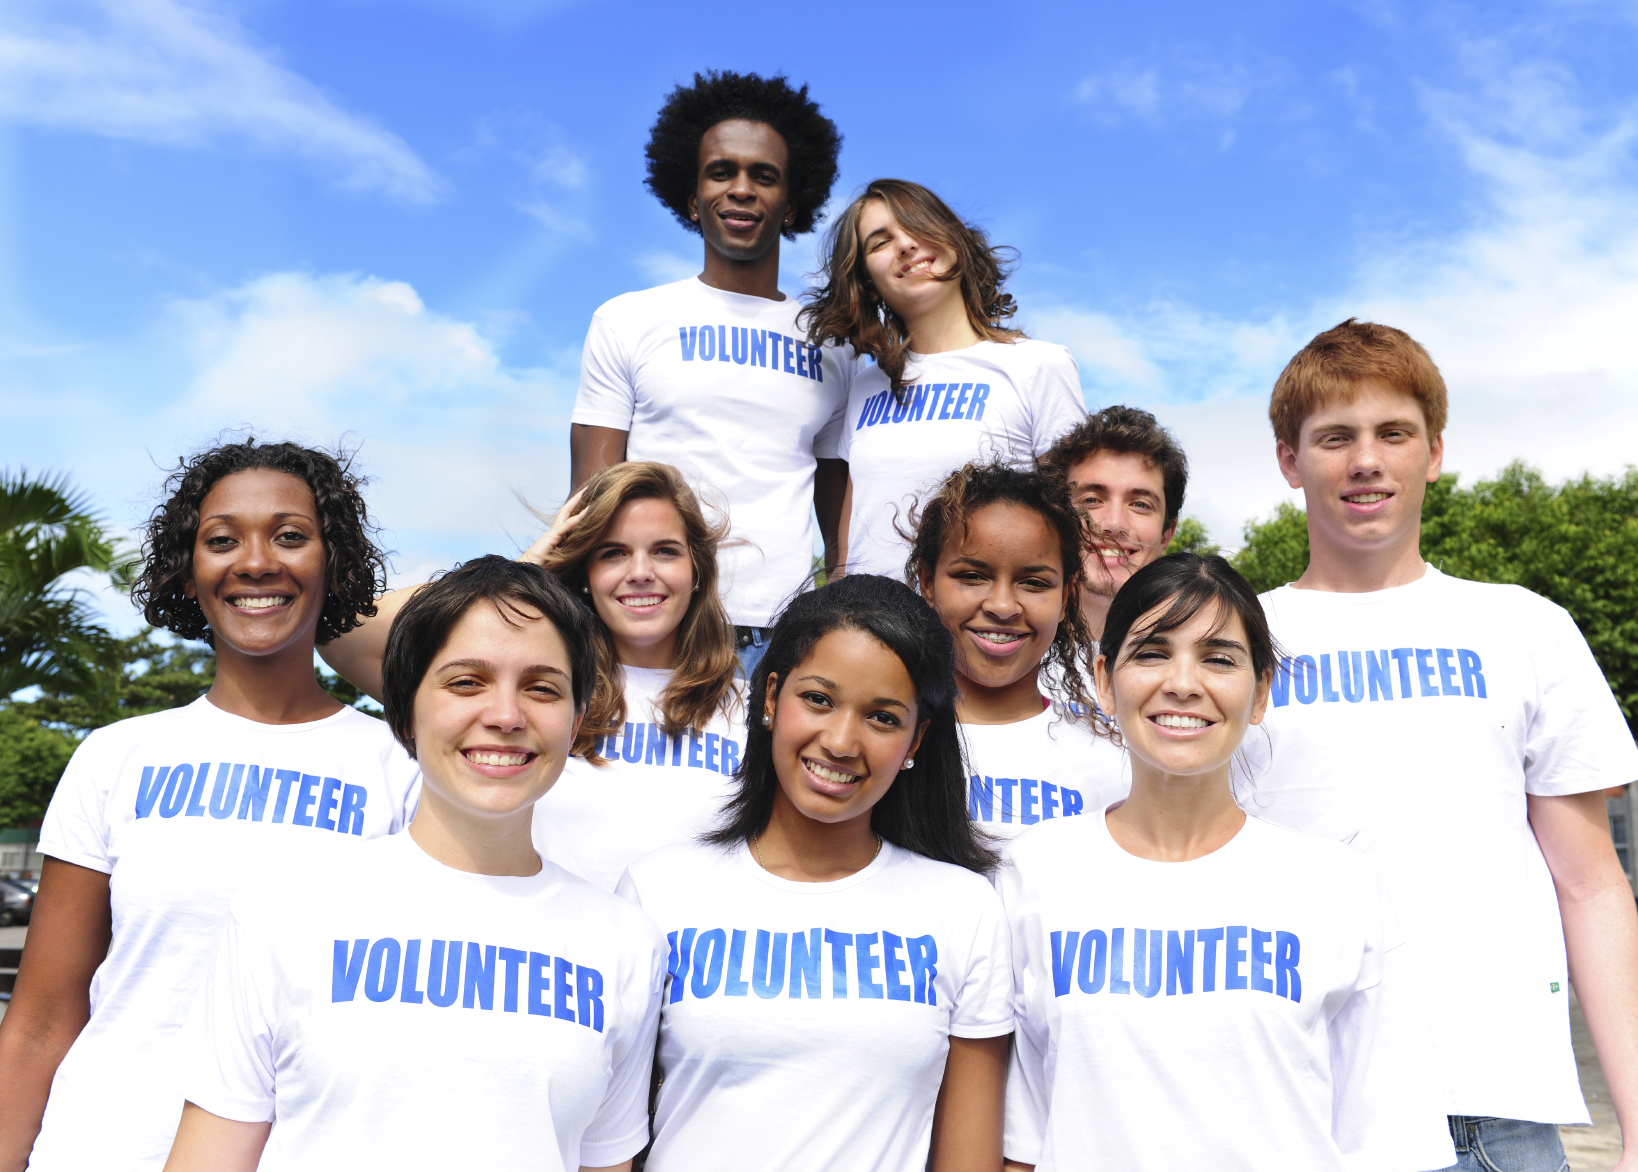 Group-of-multiethnic-volunteers